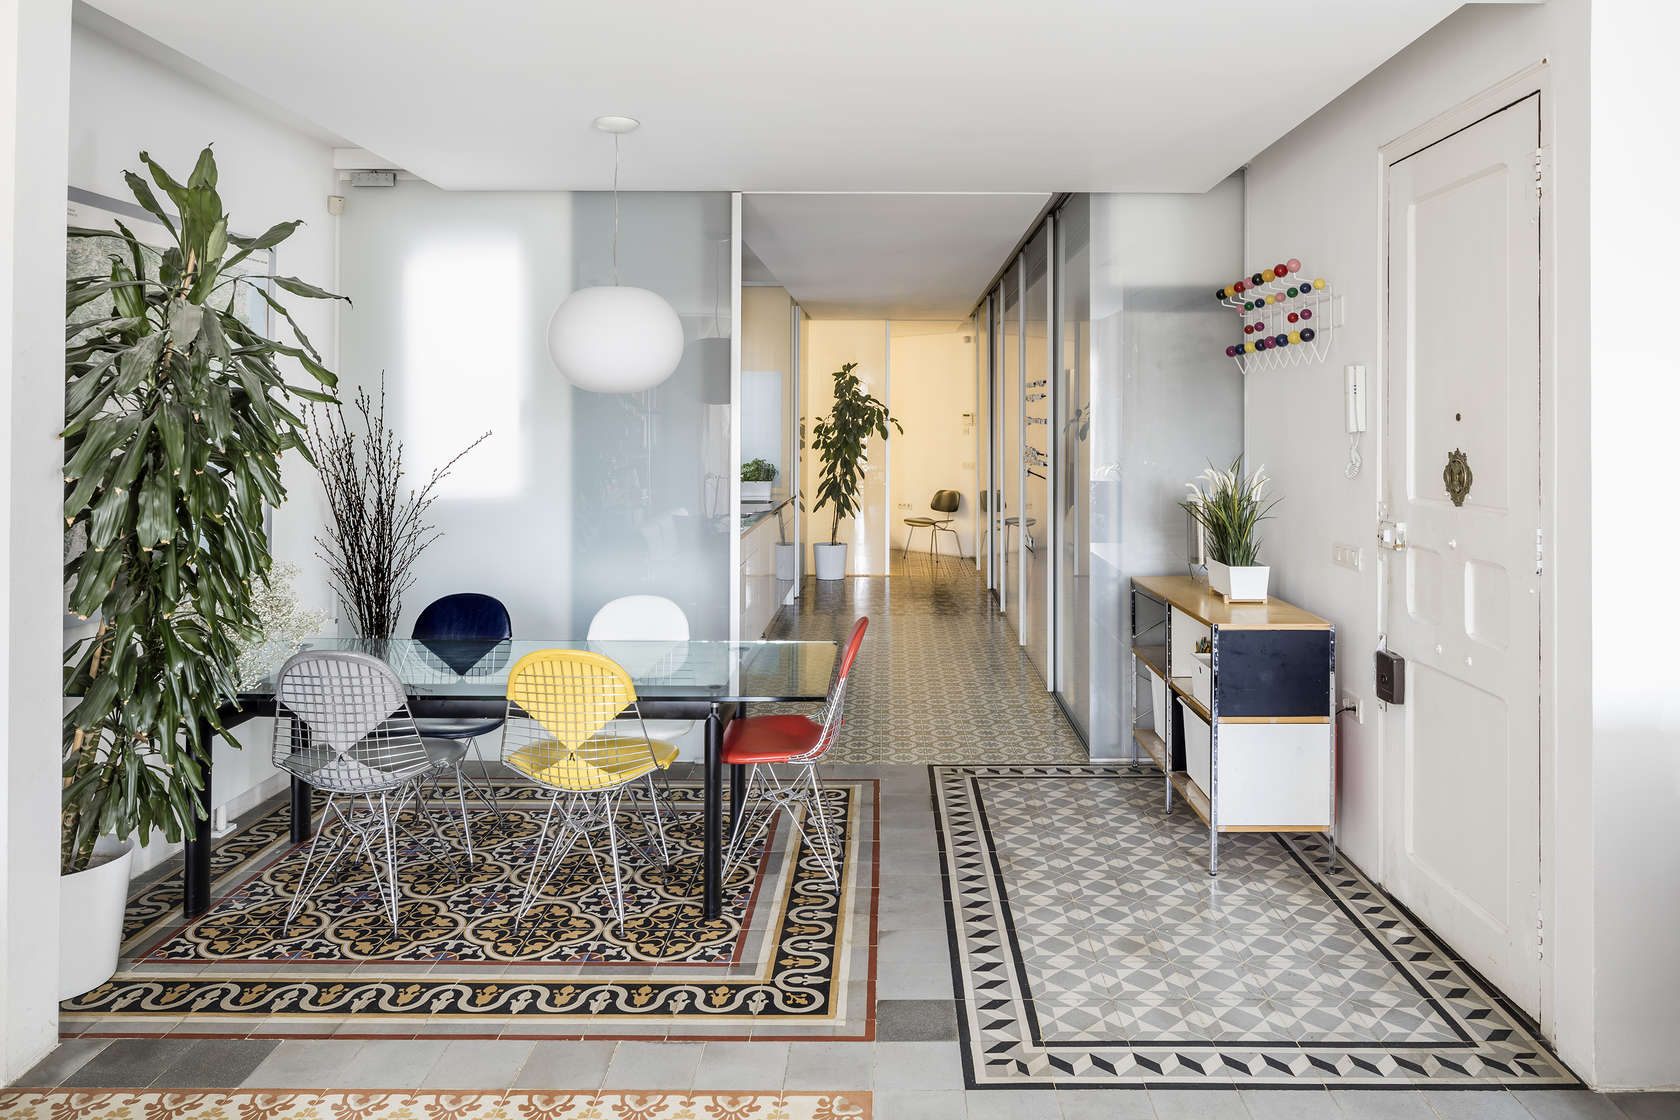 1925 apartment renovation in eixample barcelona for 1925 kitchen designs